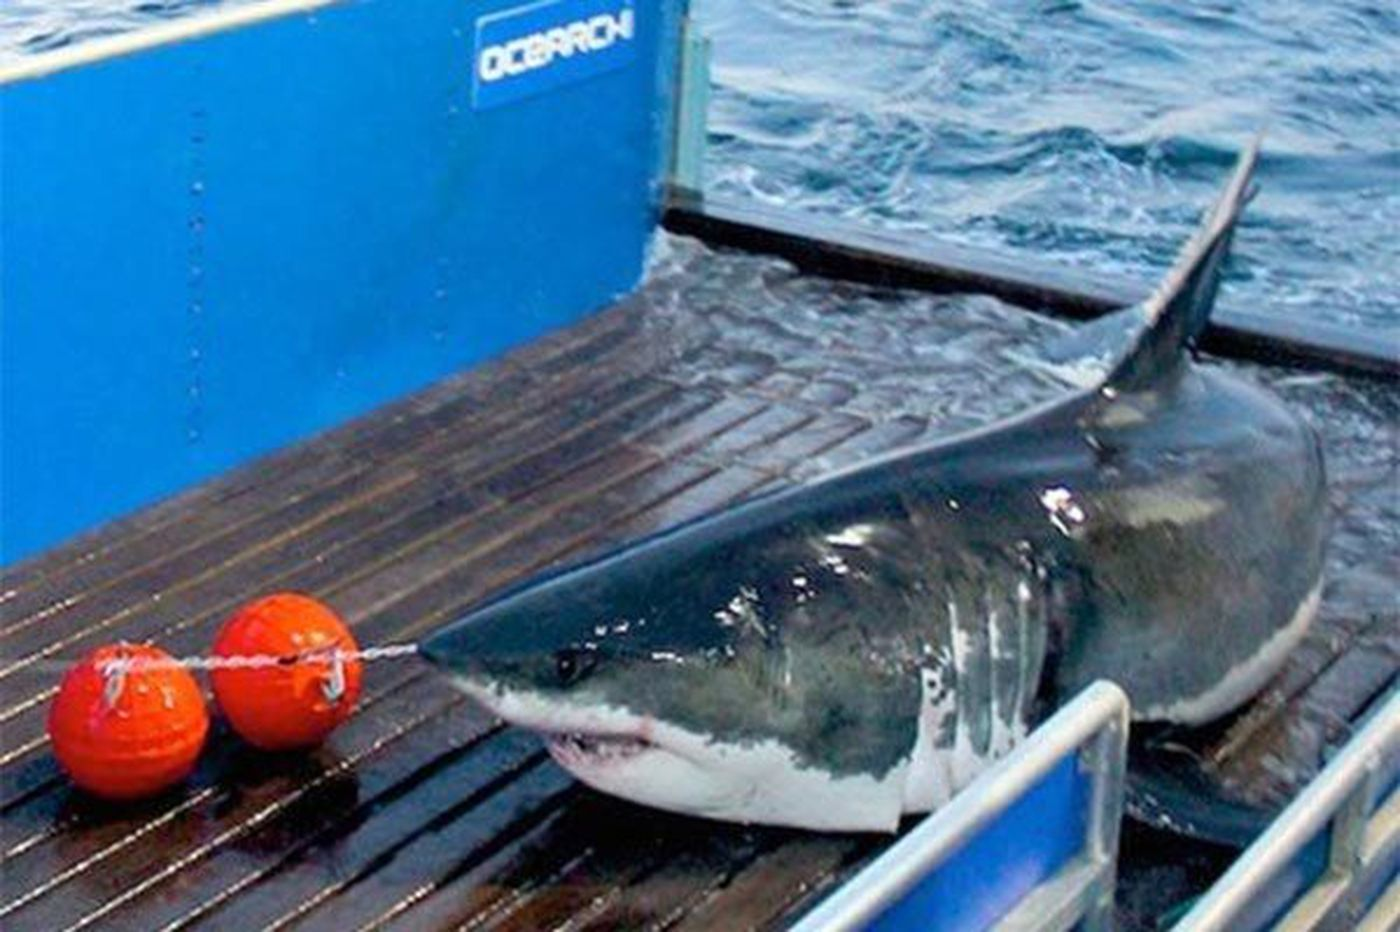 Where's Mary Lee the great white shark? She's been missing for a month